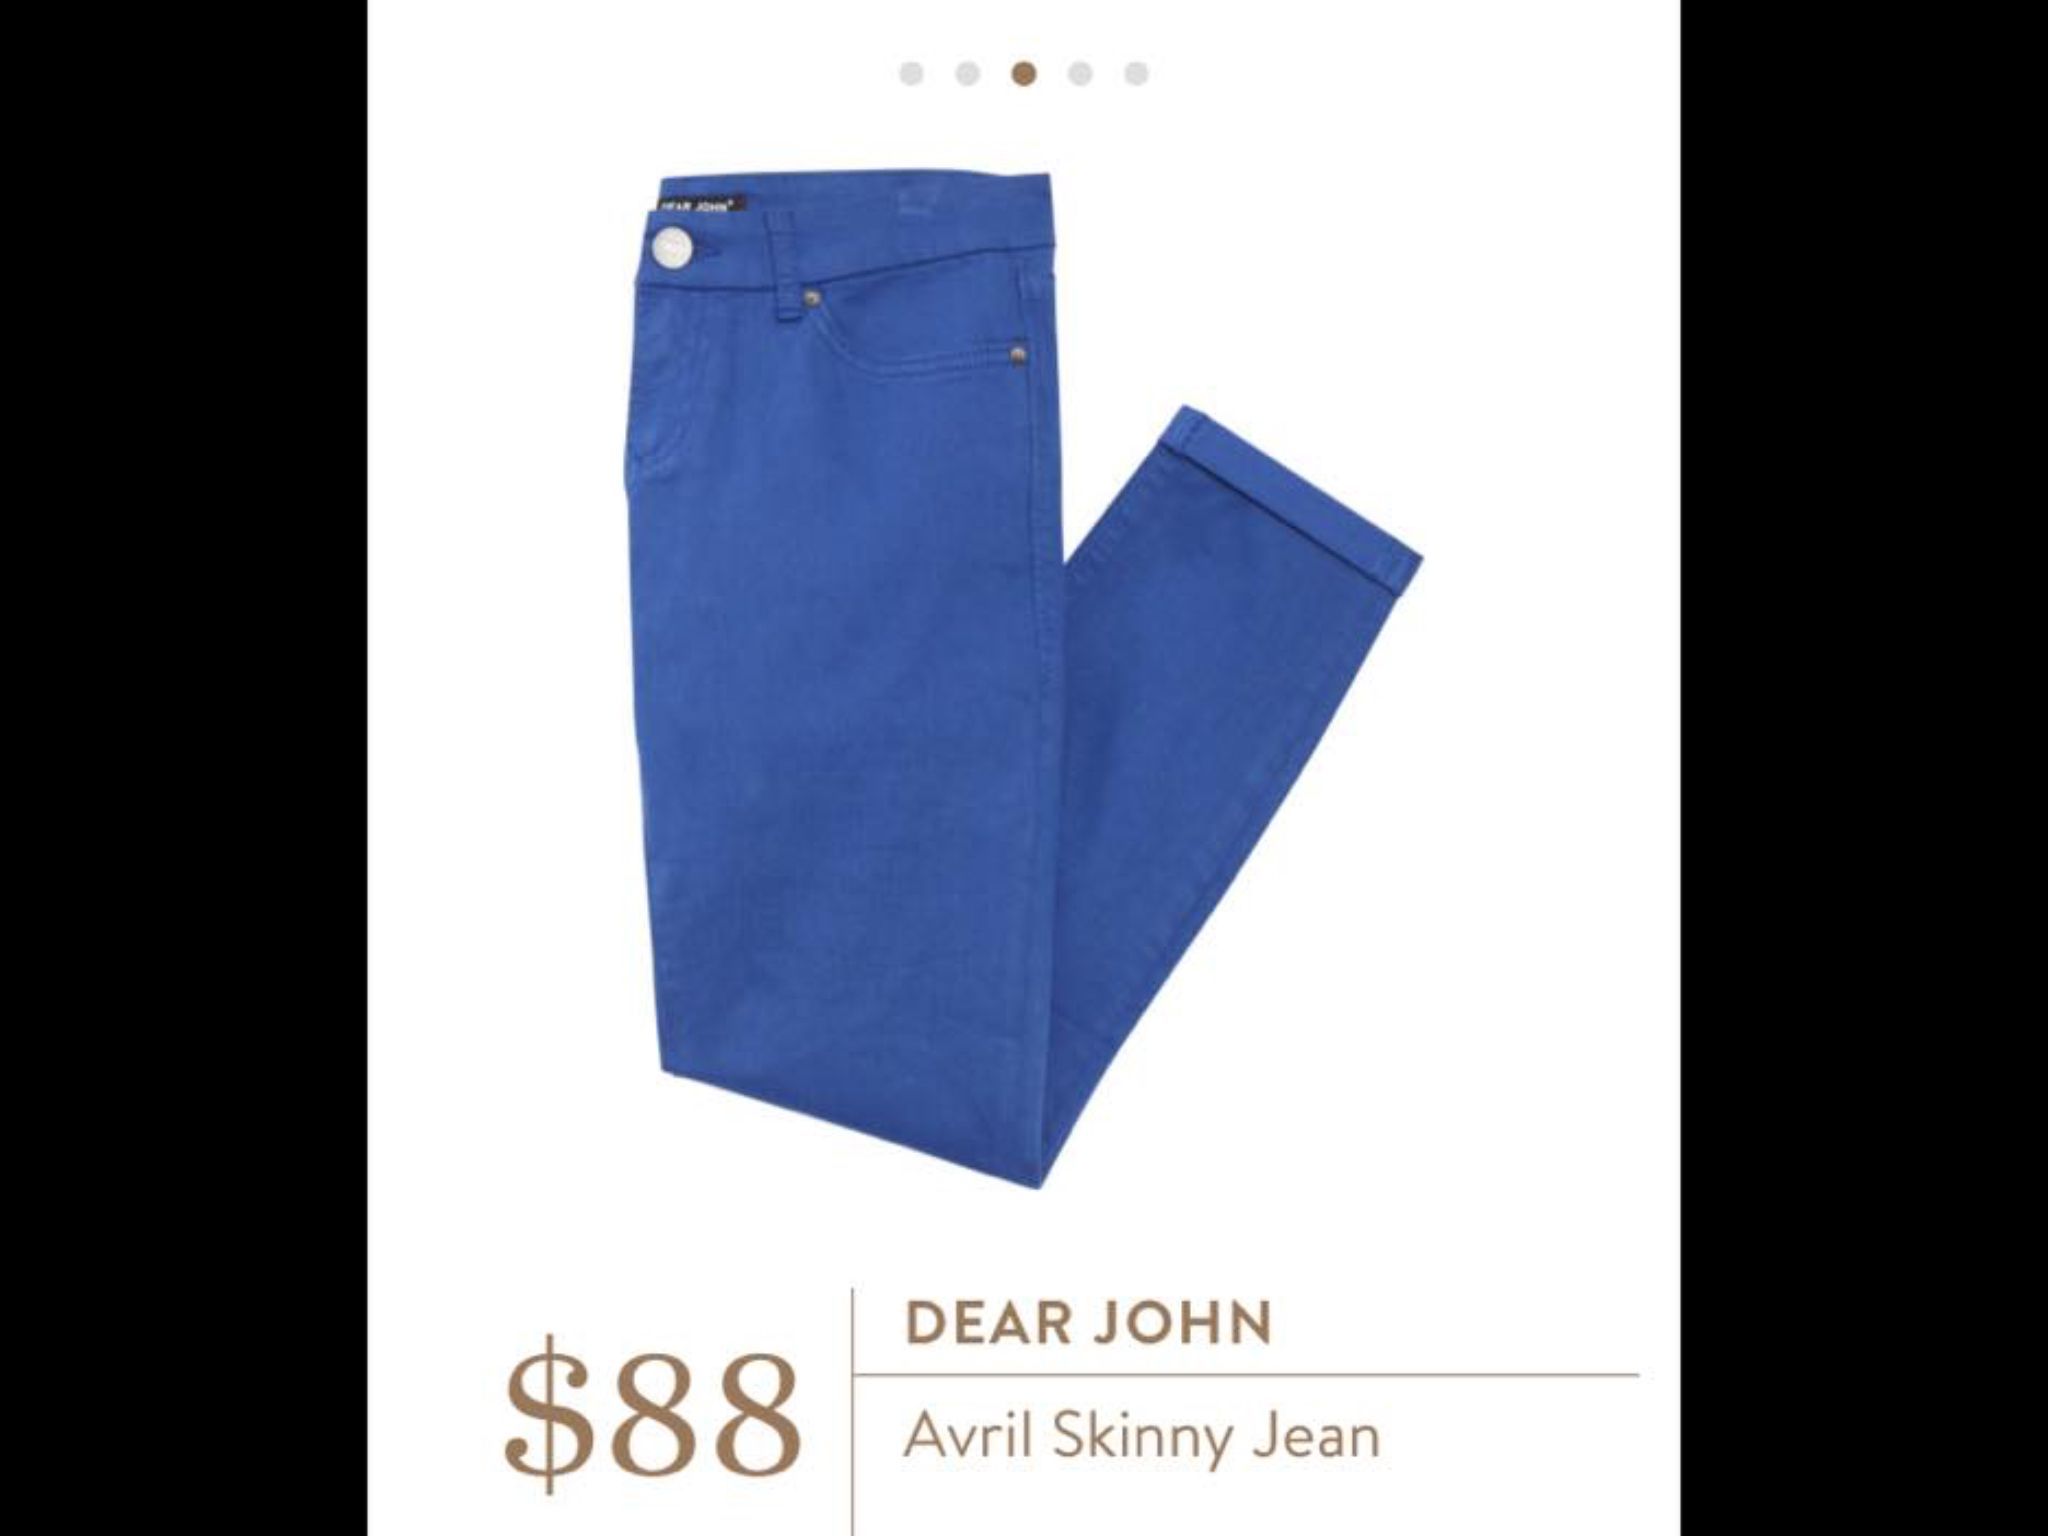 Dear John Avril Skinny Jean. Colored pants, would love